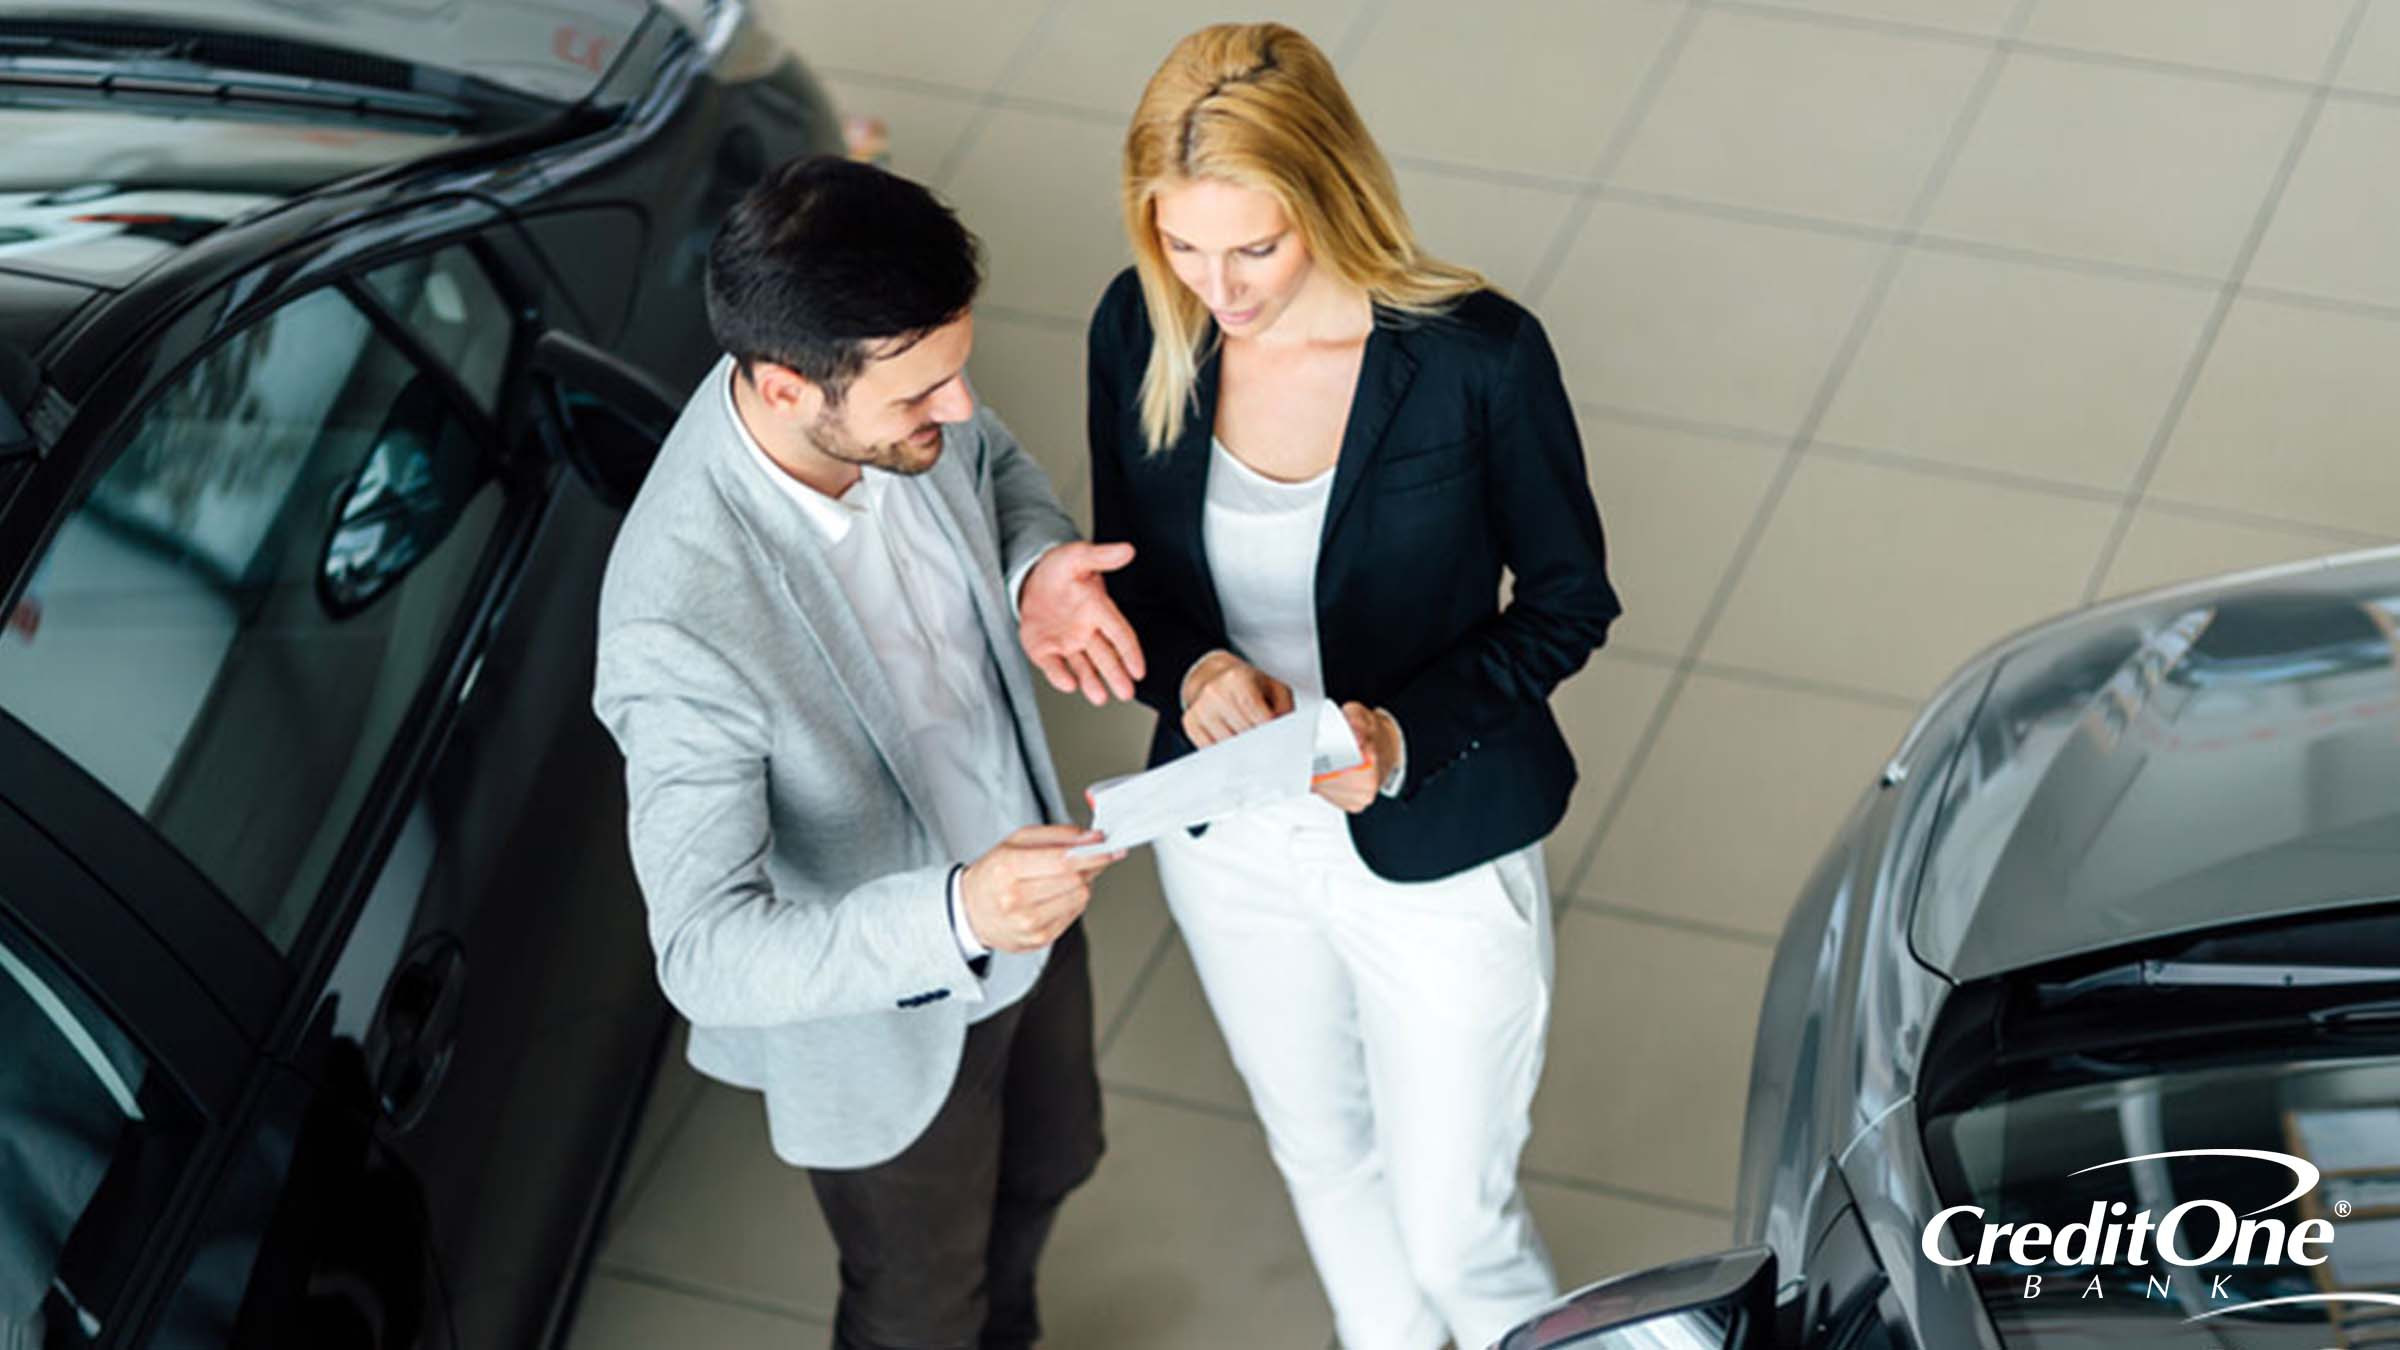 Weighing the options between leasing or buying a car at a car dealership